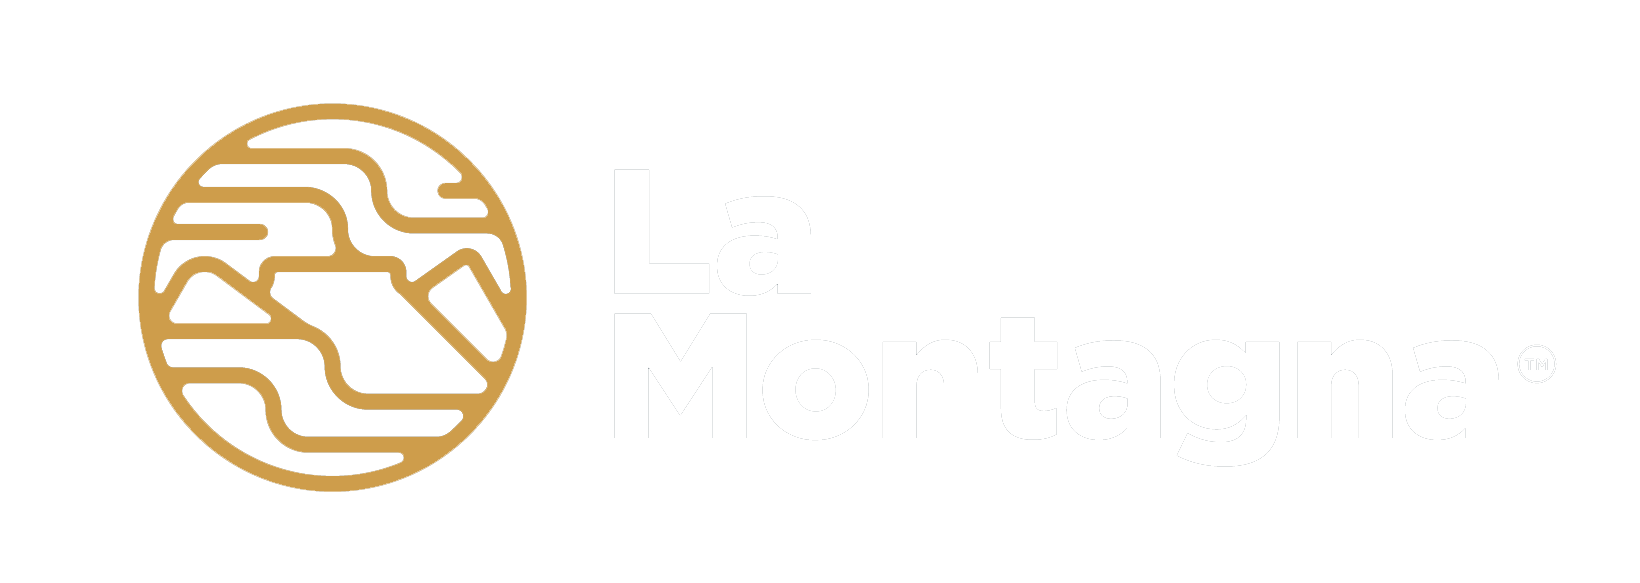 La Montagna Digital Marketing Logo